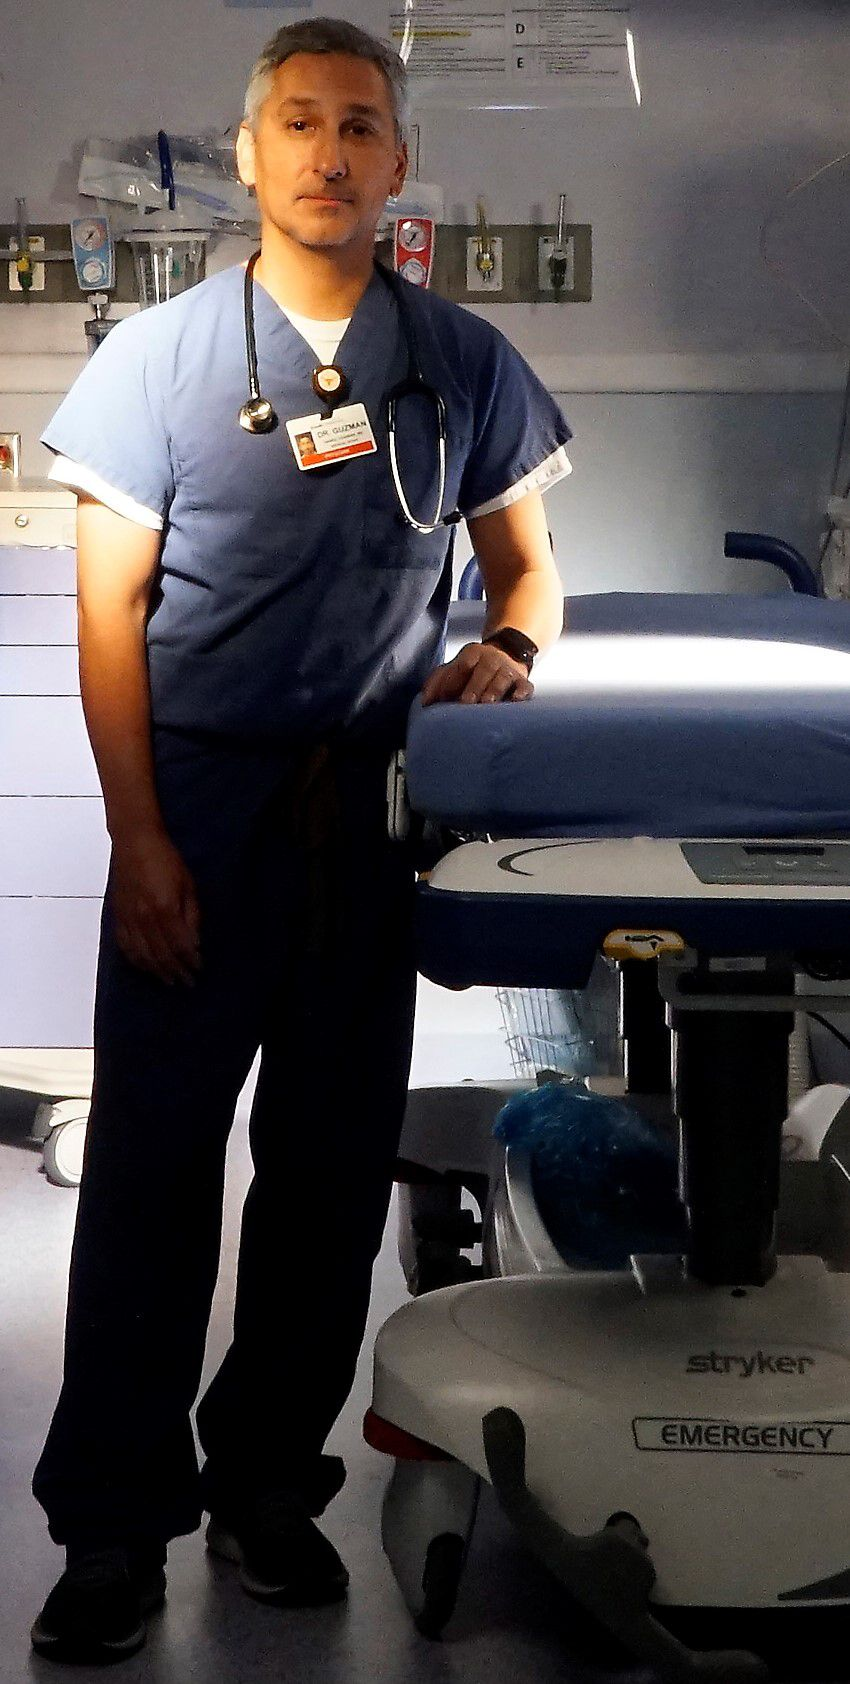 """Dr. Daniel Guzman, a physician at Cook Children's, created the hospital's """"Aim for Safety"""" program."""